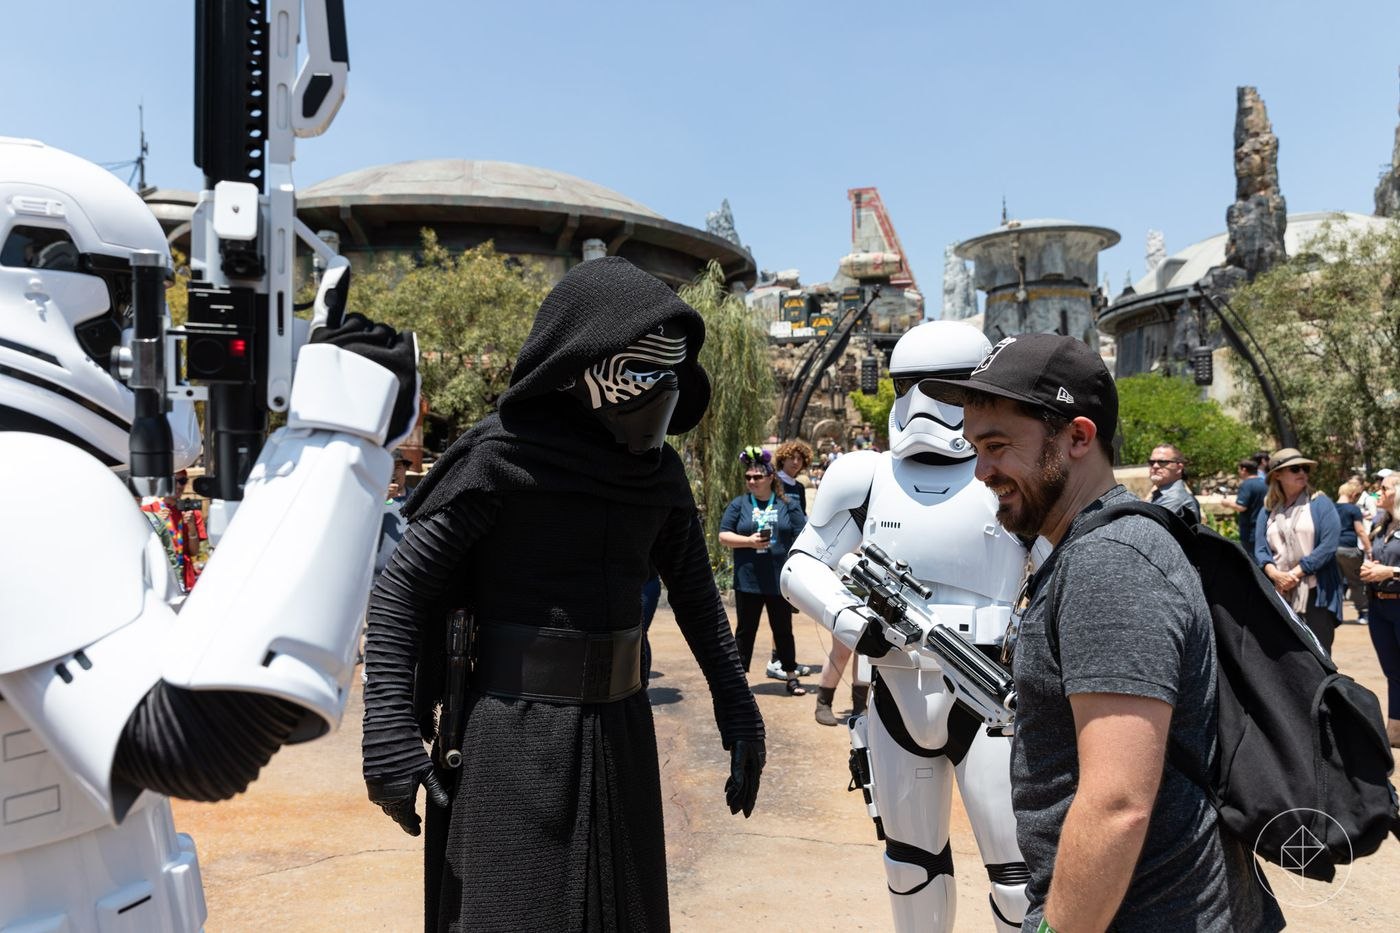 0d1f8a52713 Disneyland review: the iconic theme park in the Star Wars & Marvel age -  Polygon